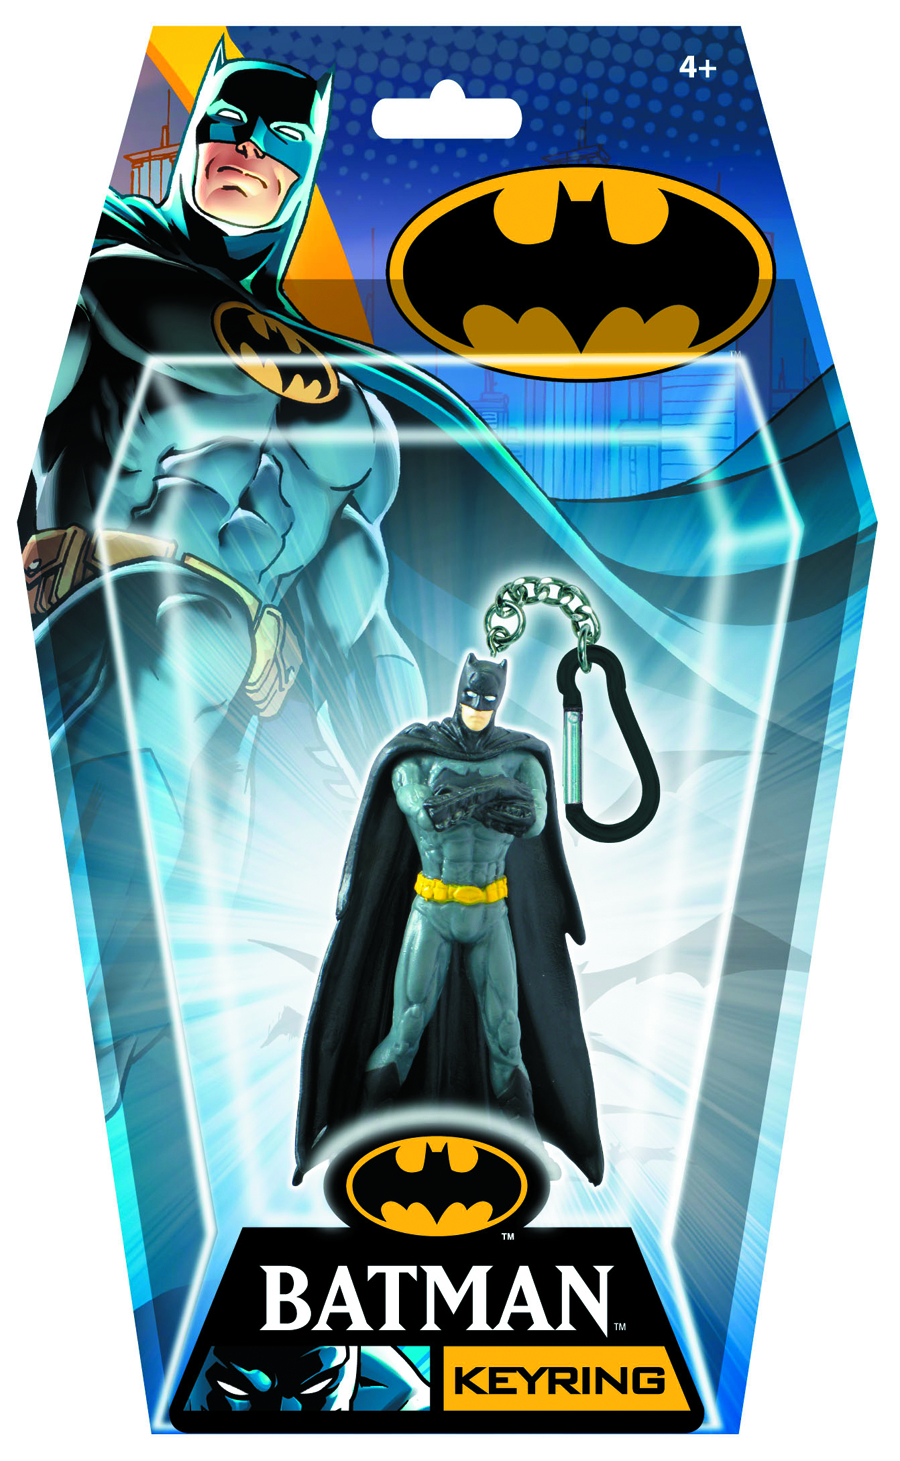 BATMAN CROSSING ARMS FIGURAL KEYRING